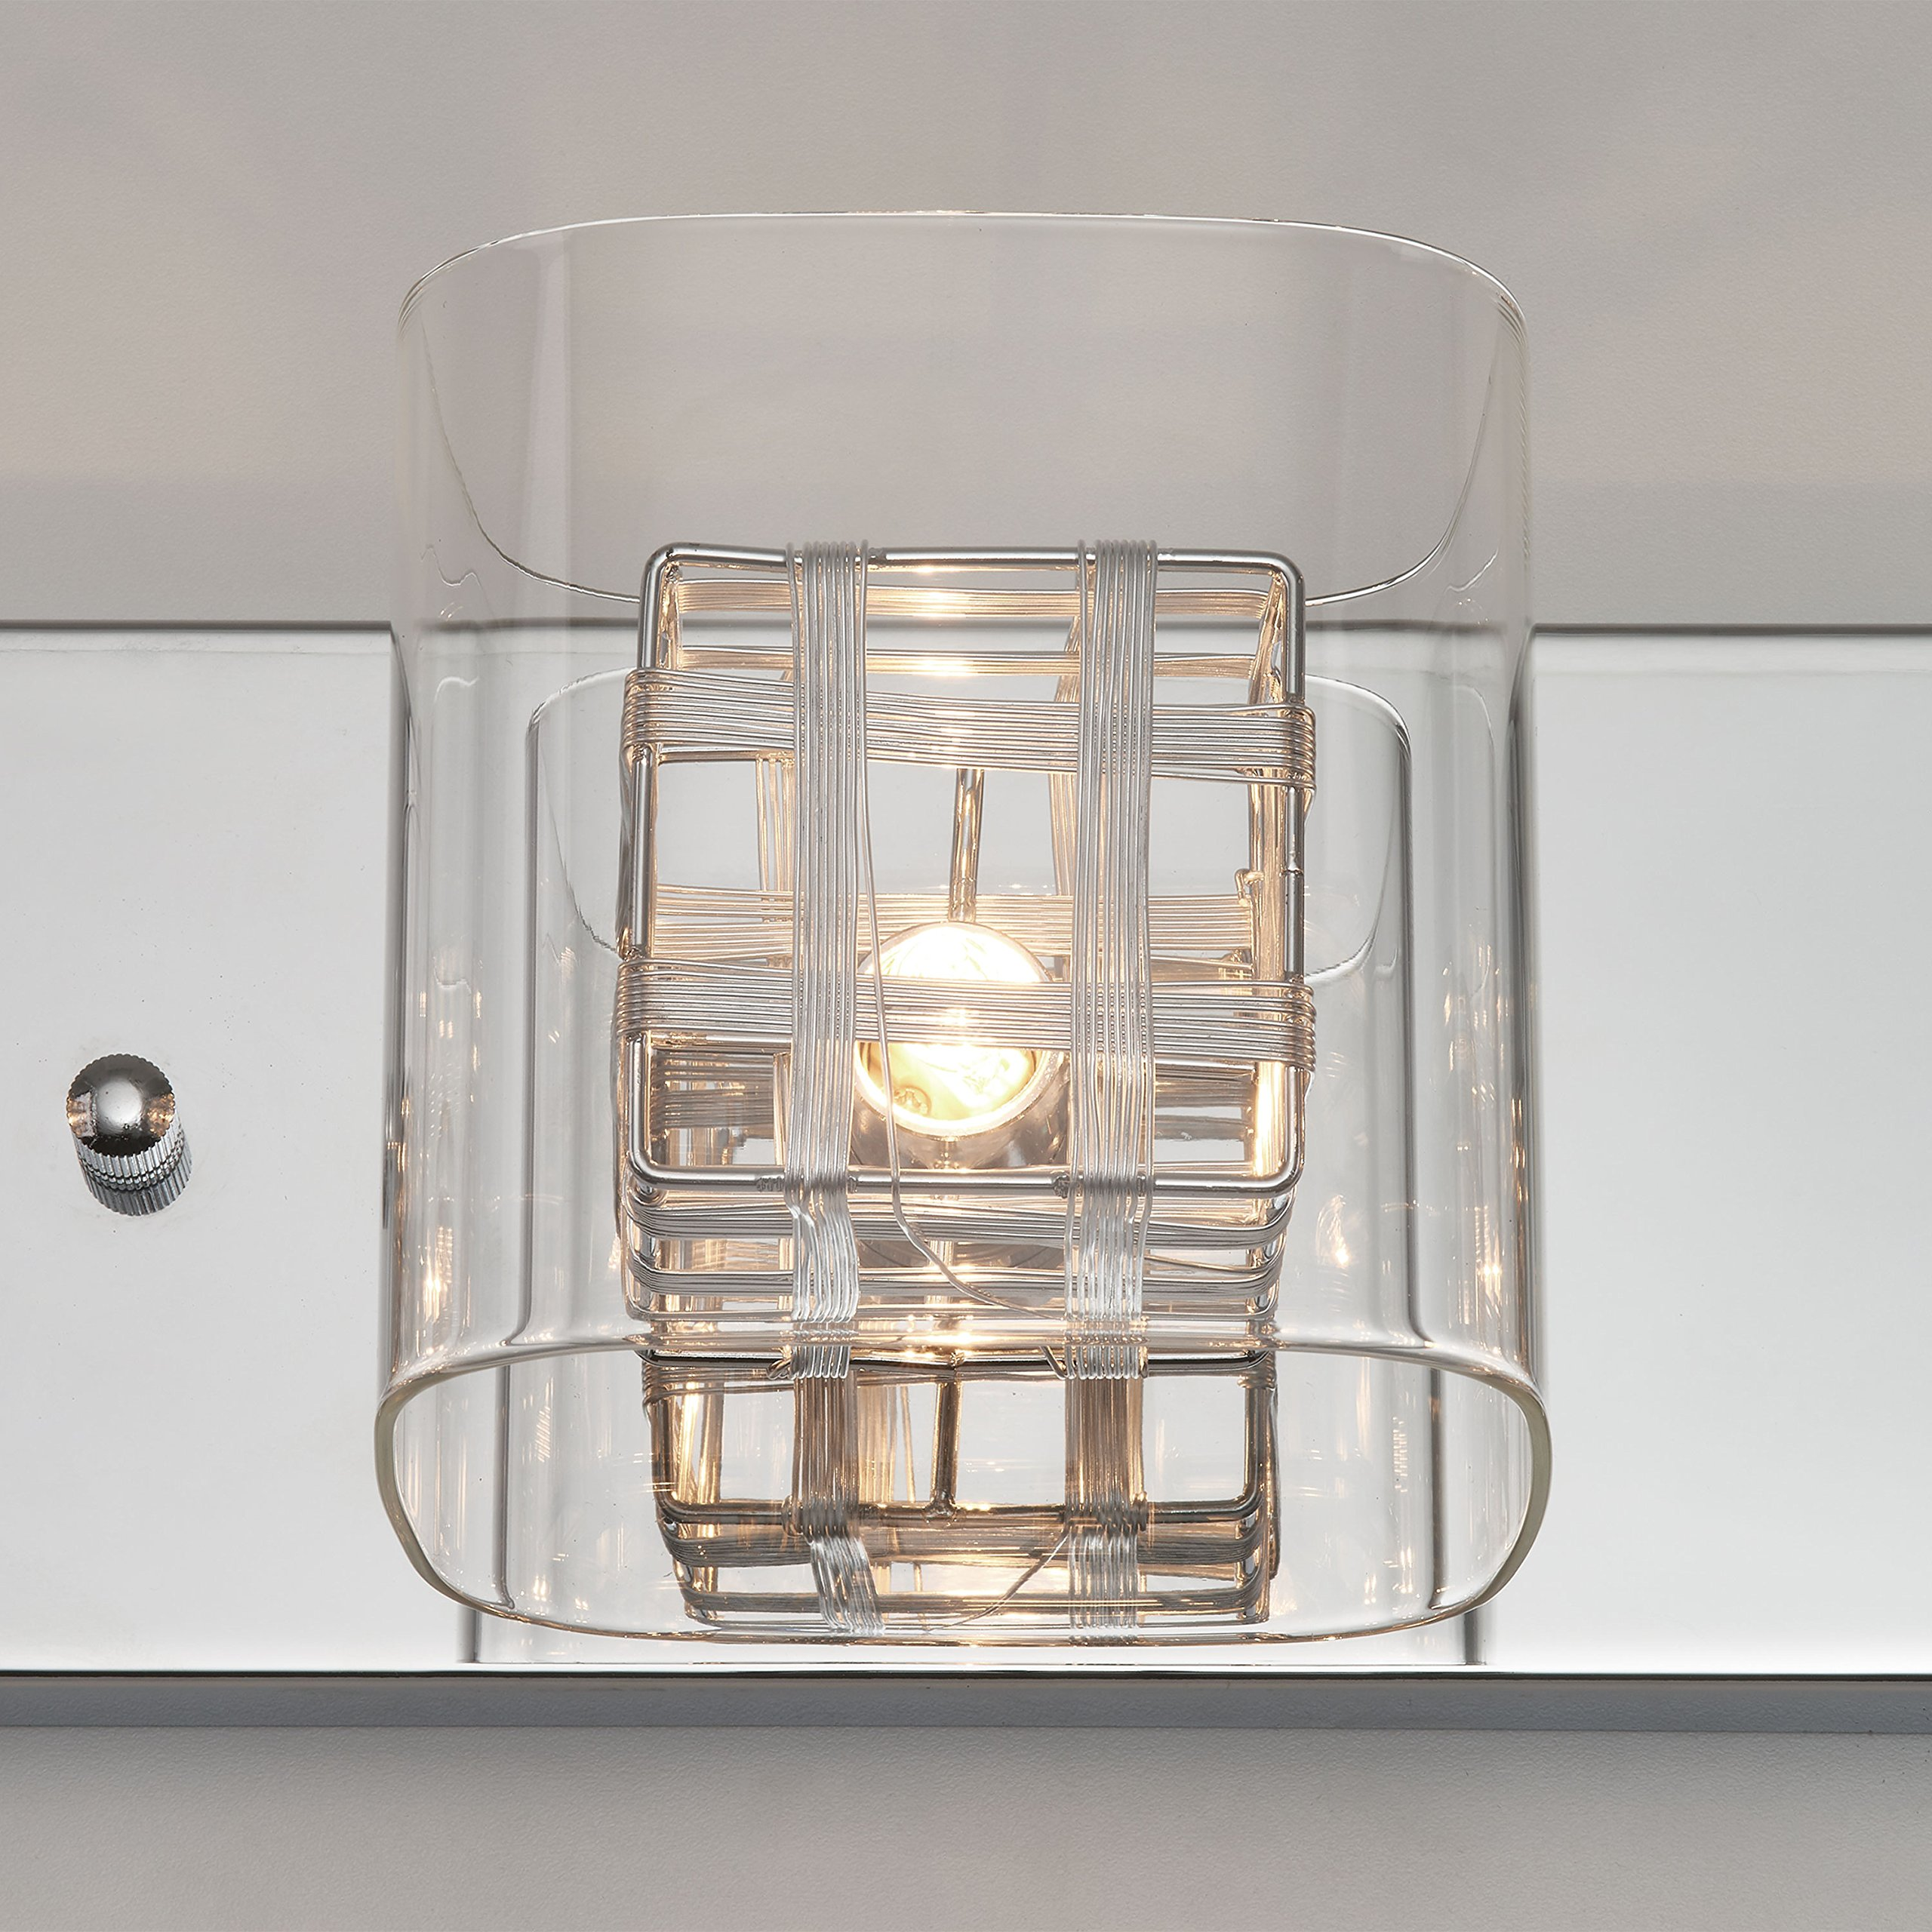 Artika VAN4M-HD1 Metropolitan 4-Light Bulbs, 30-inches Wall Fixture with Dimmable Light and a Chrome Finish by Artika (Image #2)